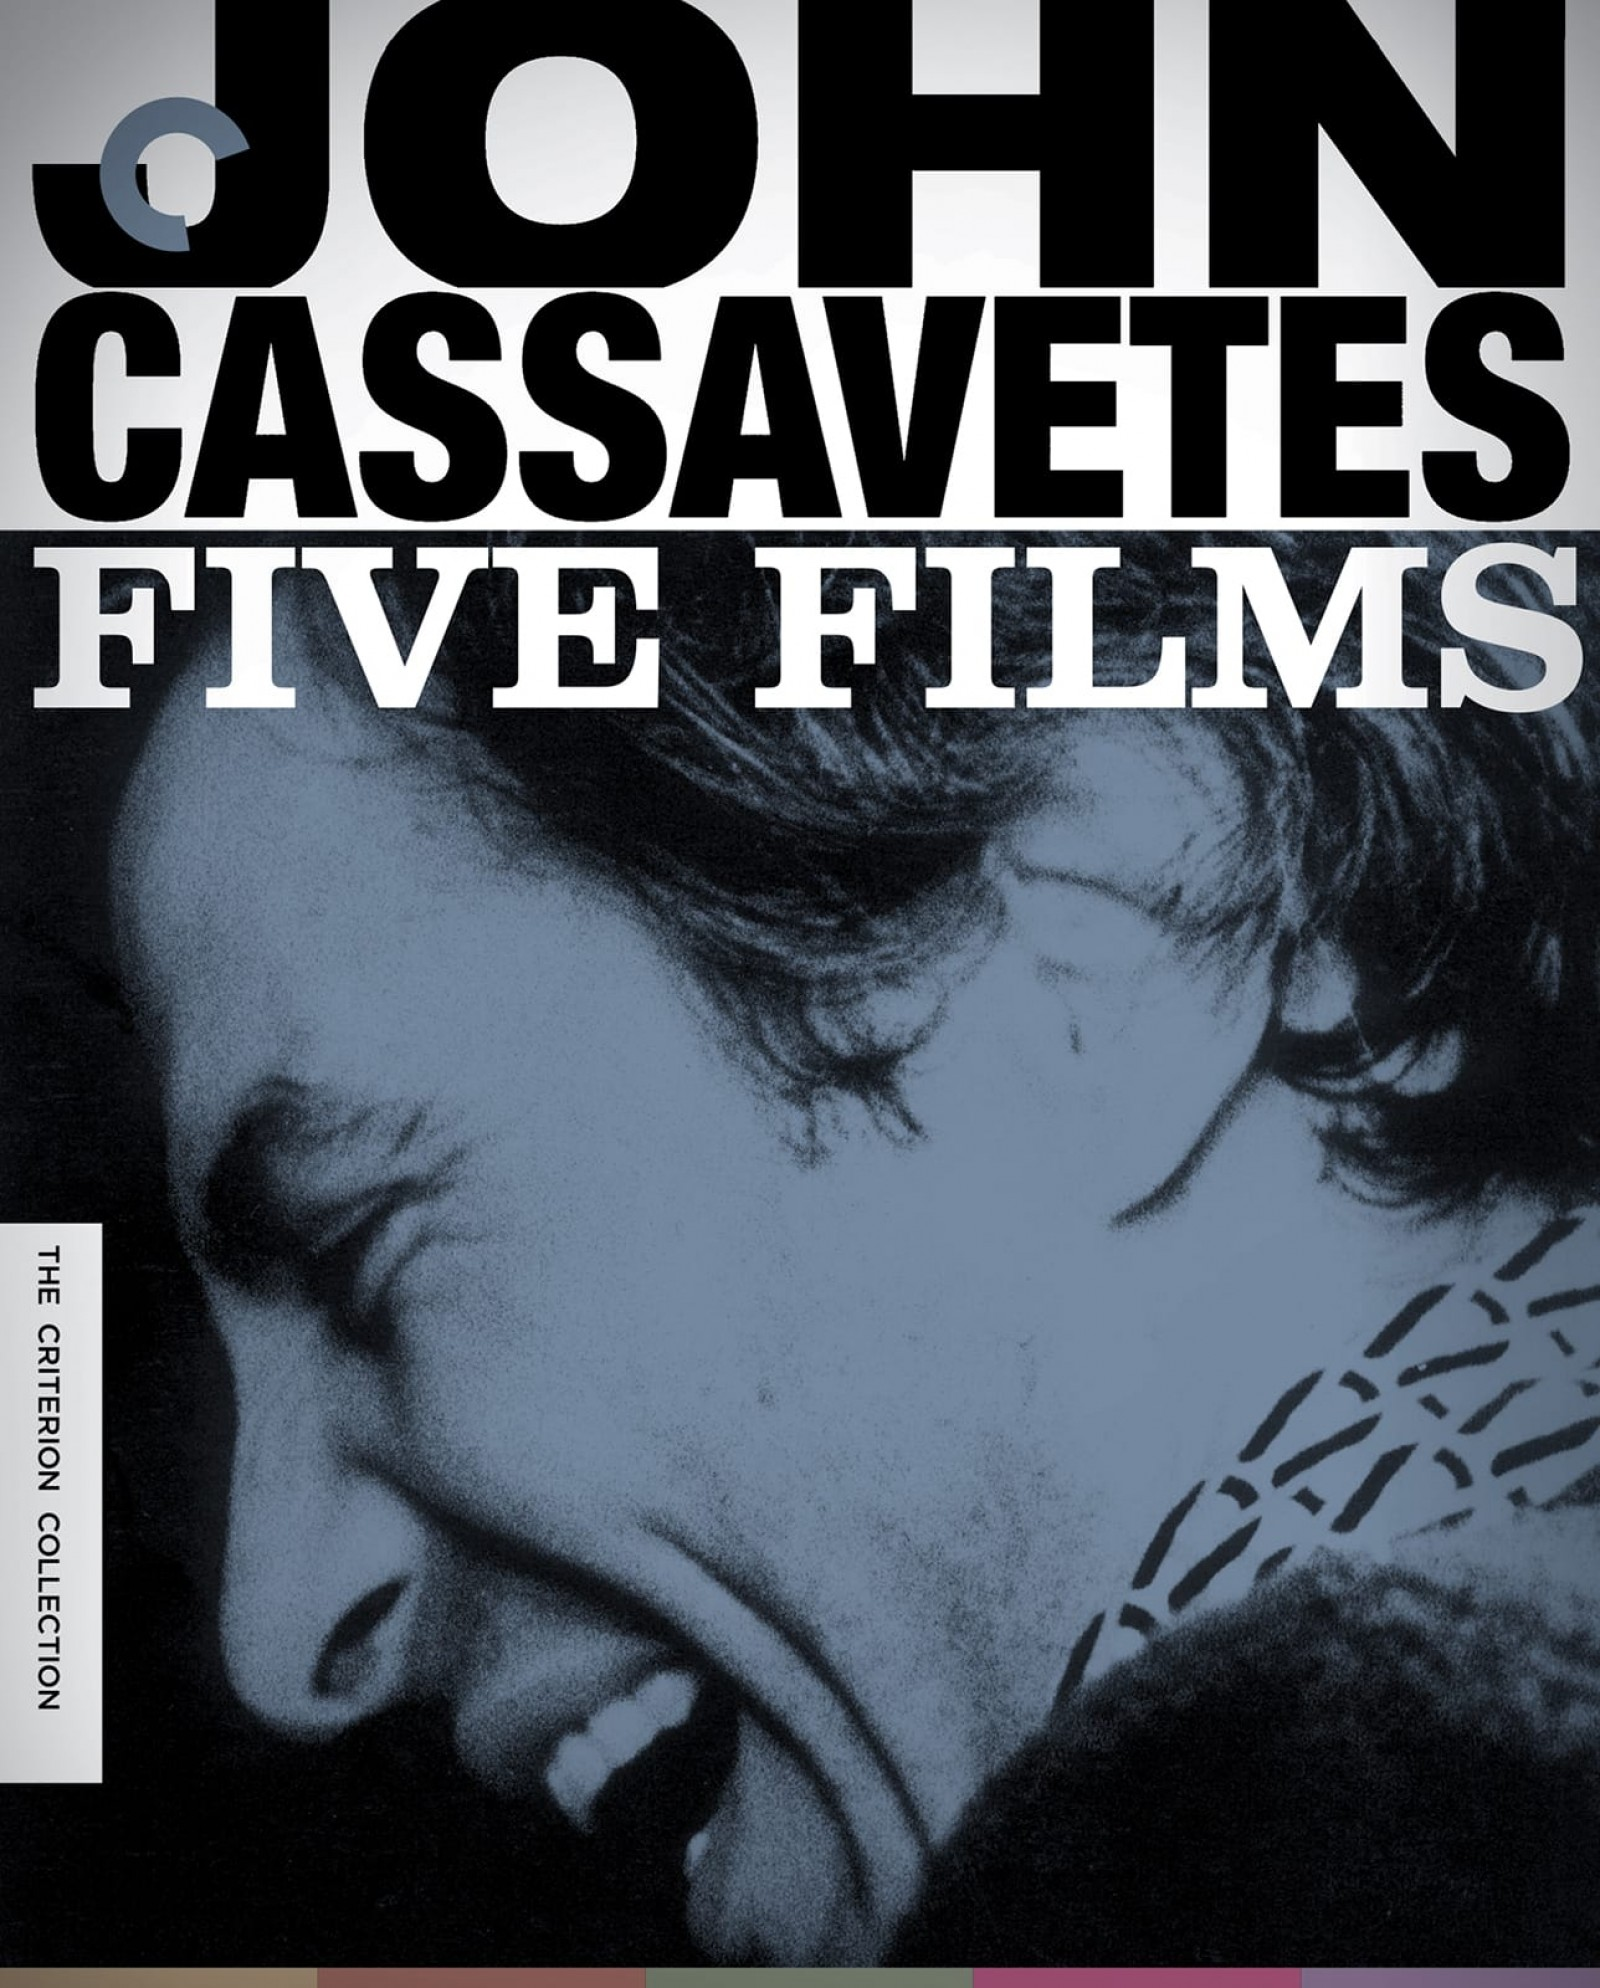 John Cassavetes: Five Films